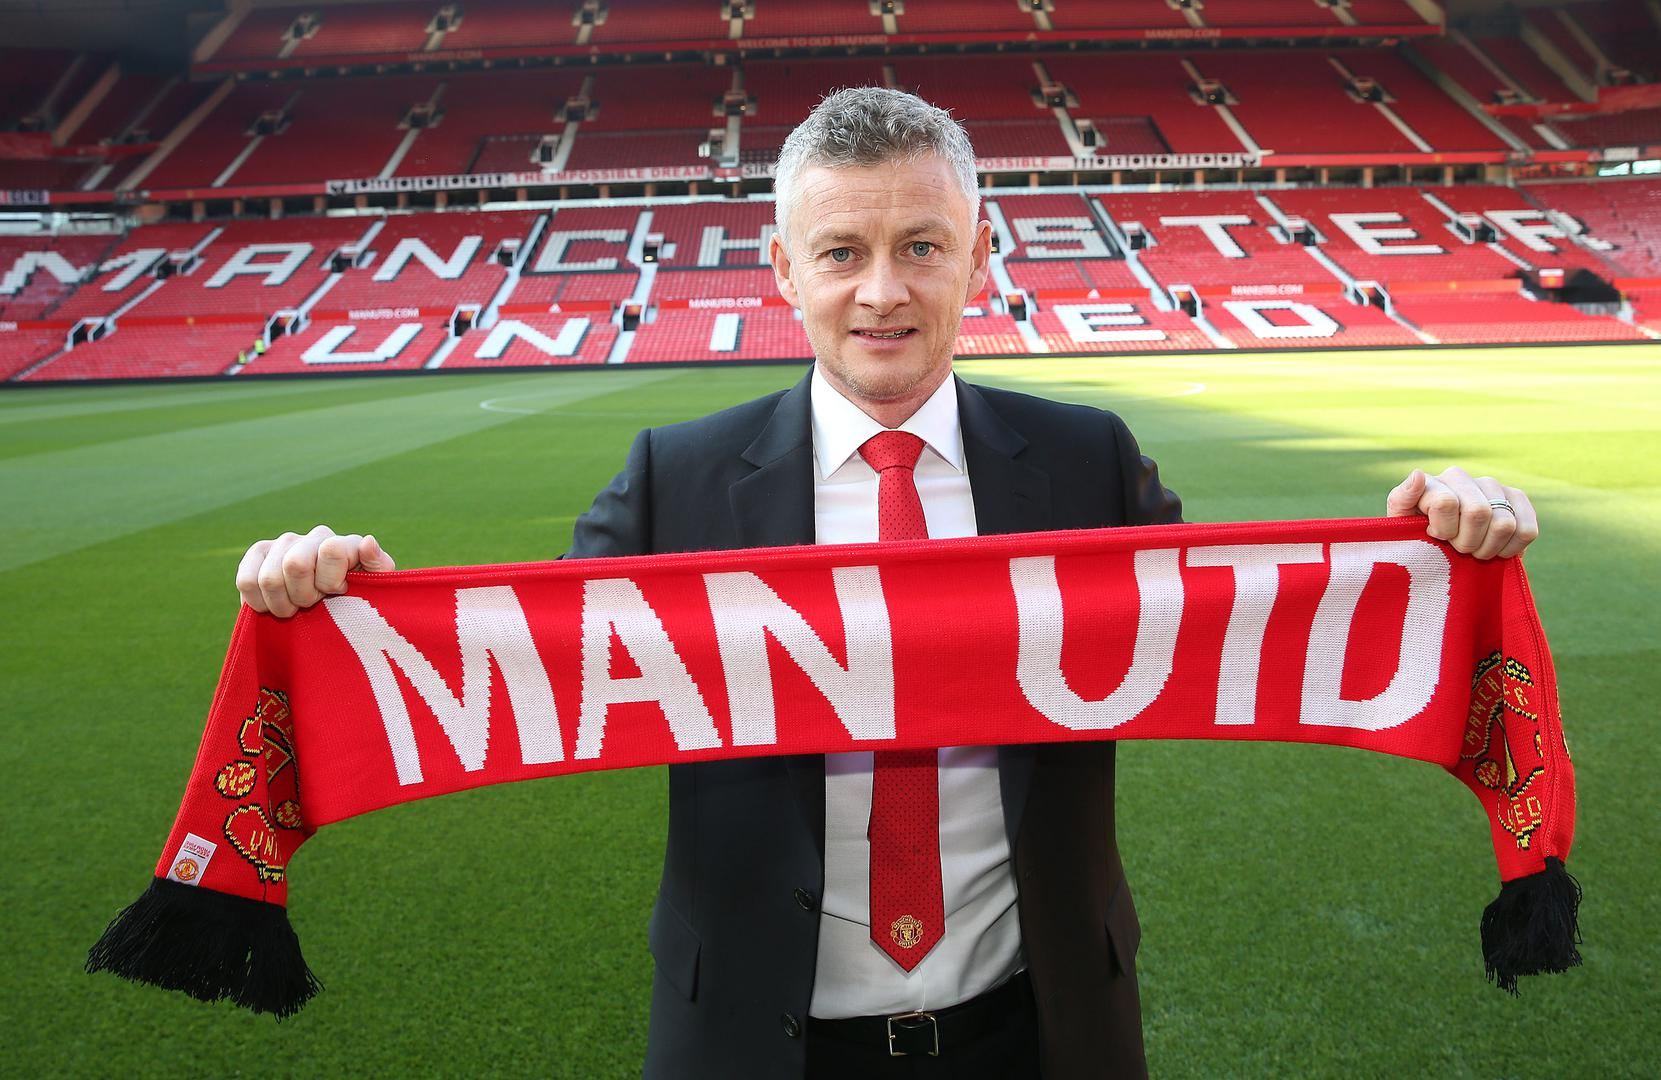 Ole Gunnar Solskjaer holds a Man Utd。。 scarf after being appointed as permanent manager on 28 March 2019